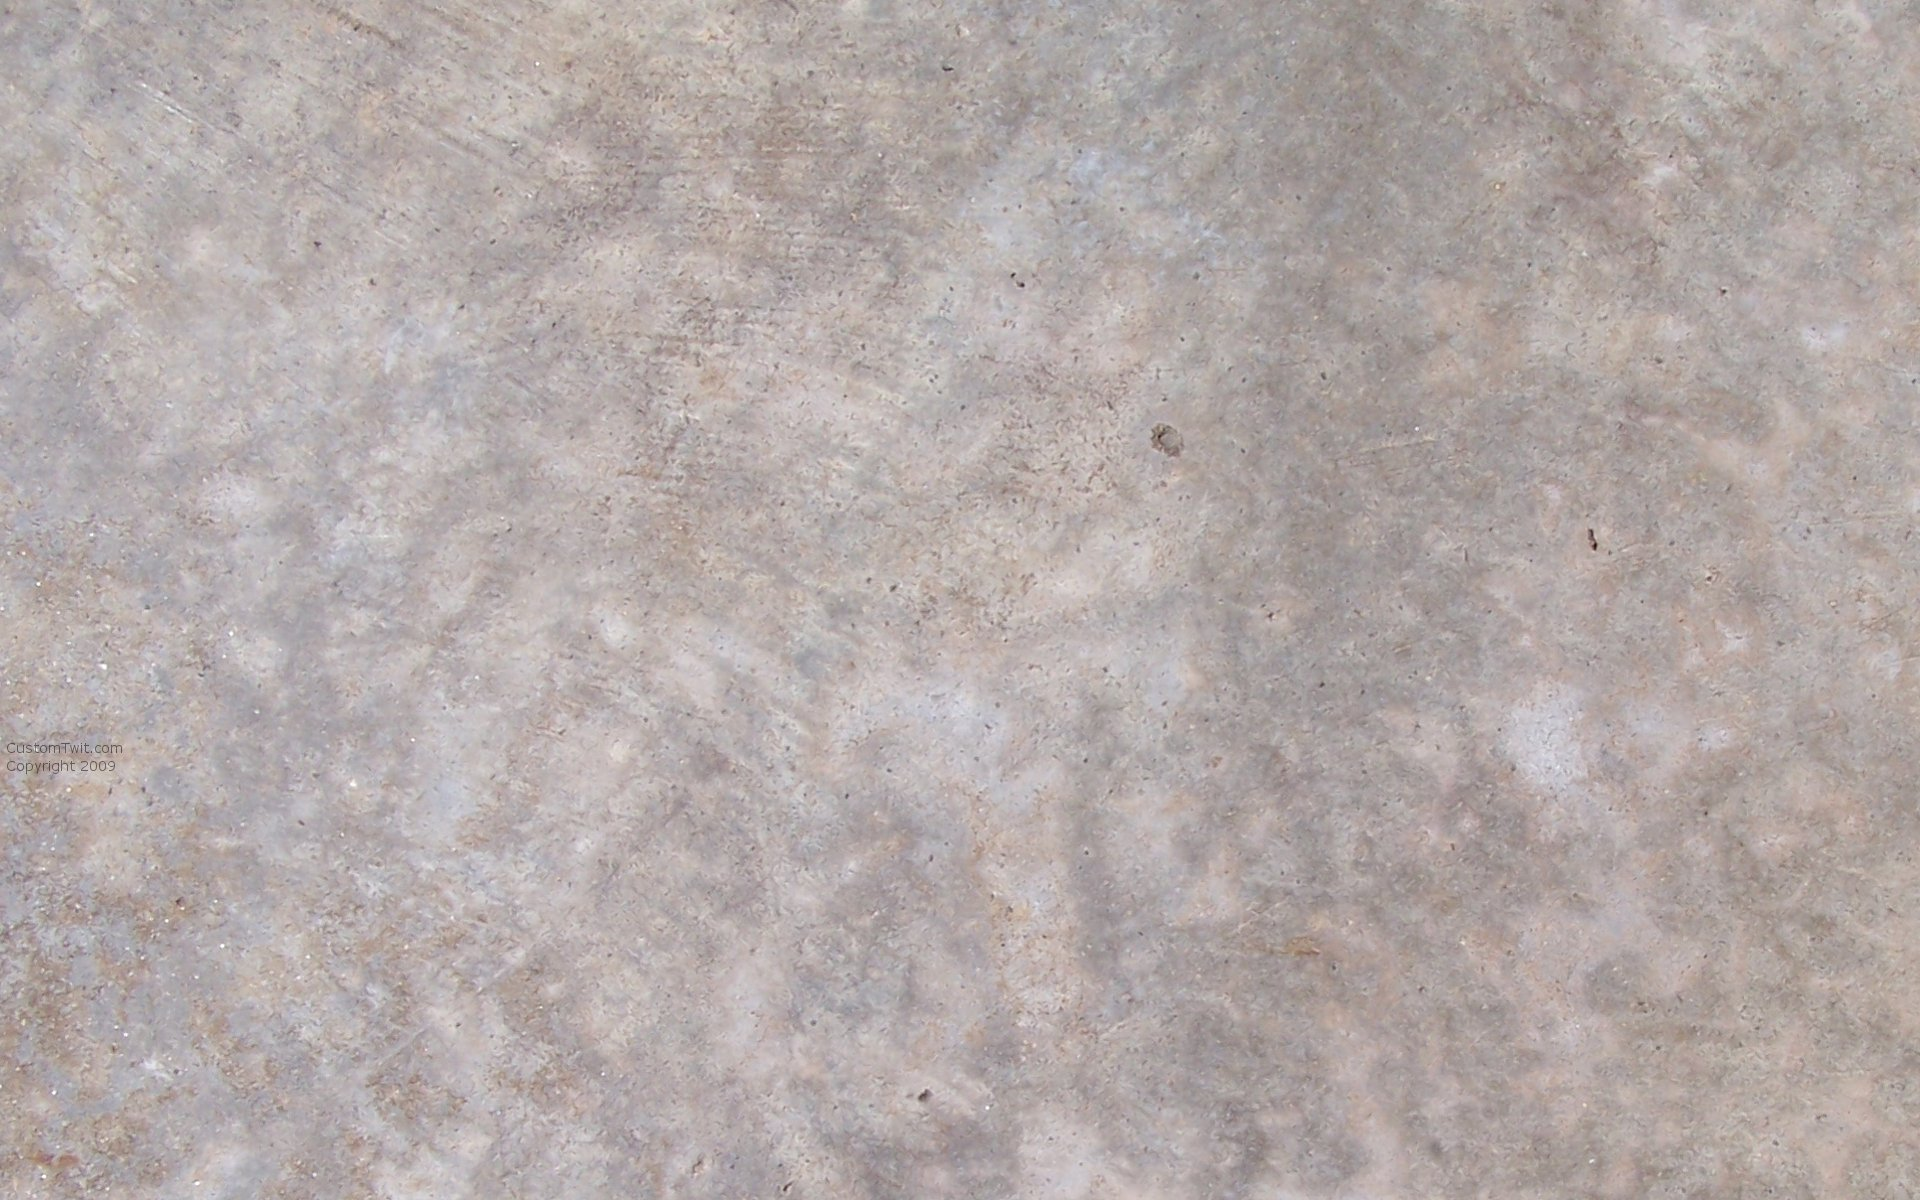 High resolution backgrounds textures images 43143 for High resolution textures